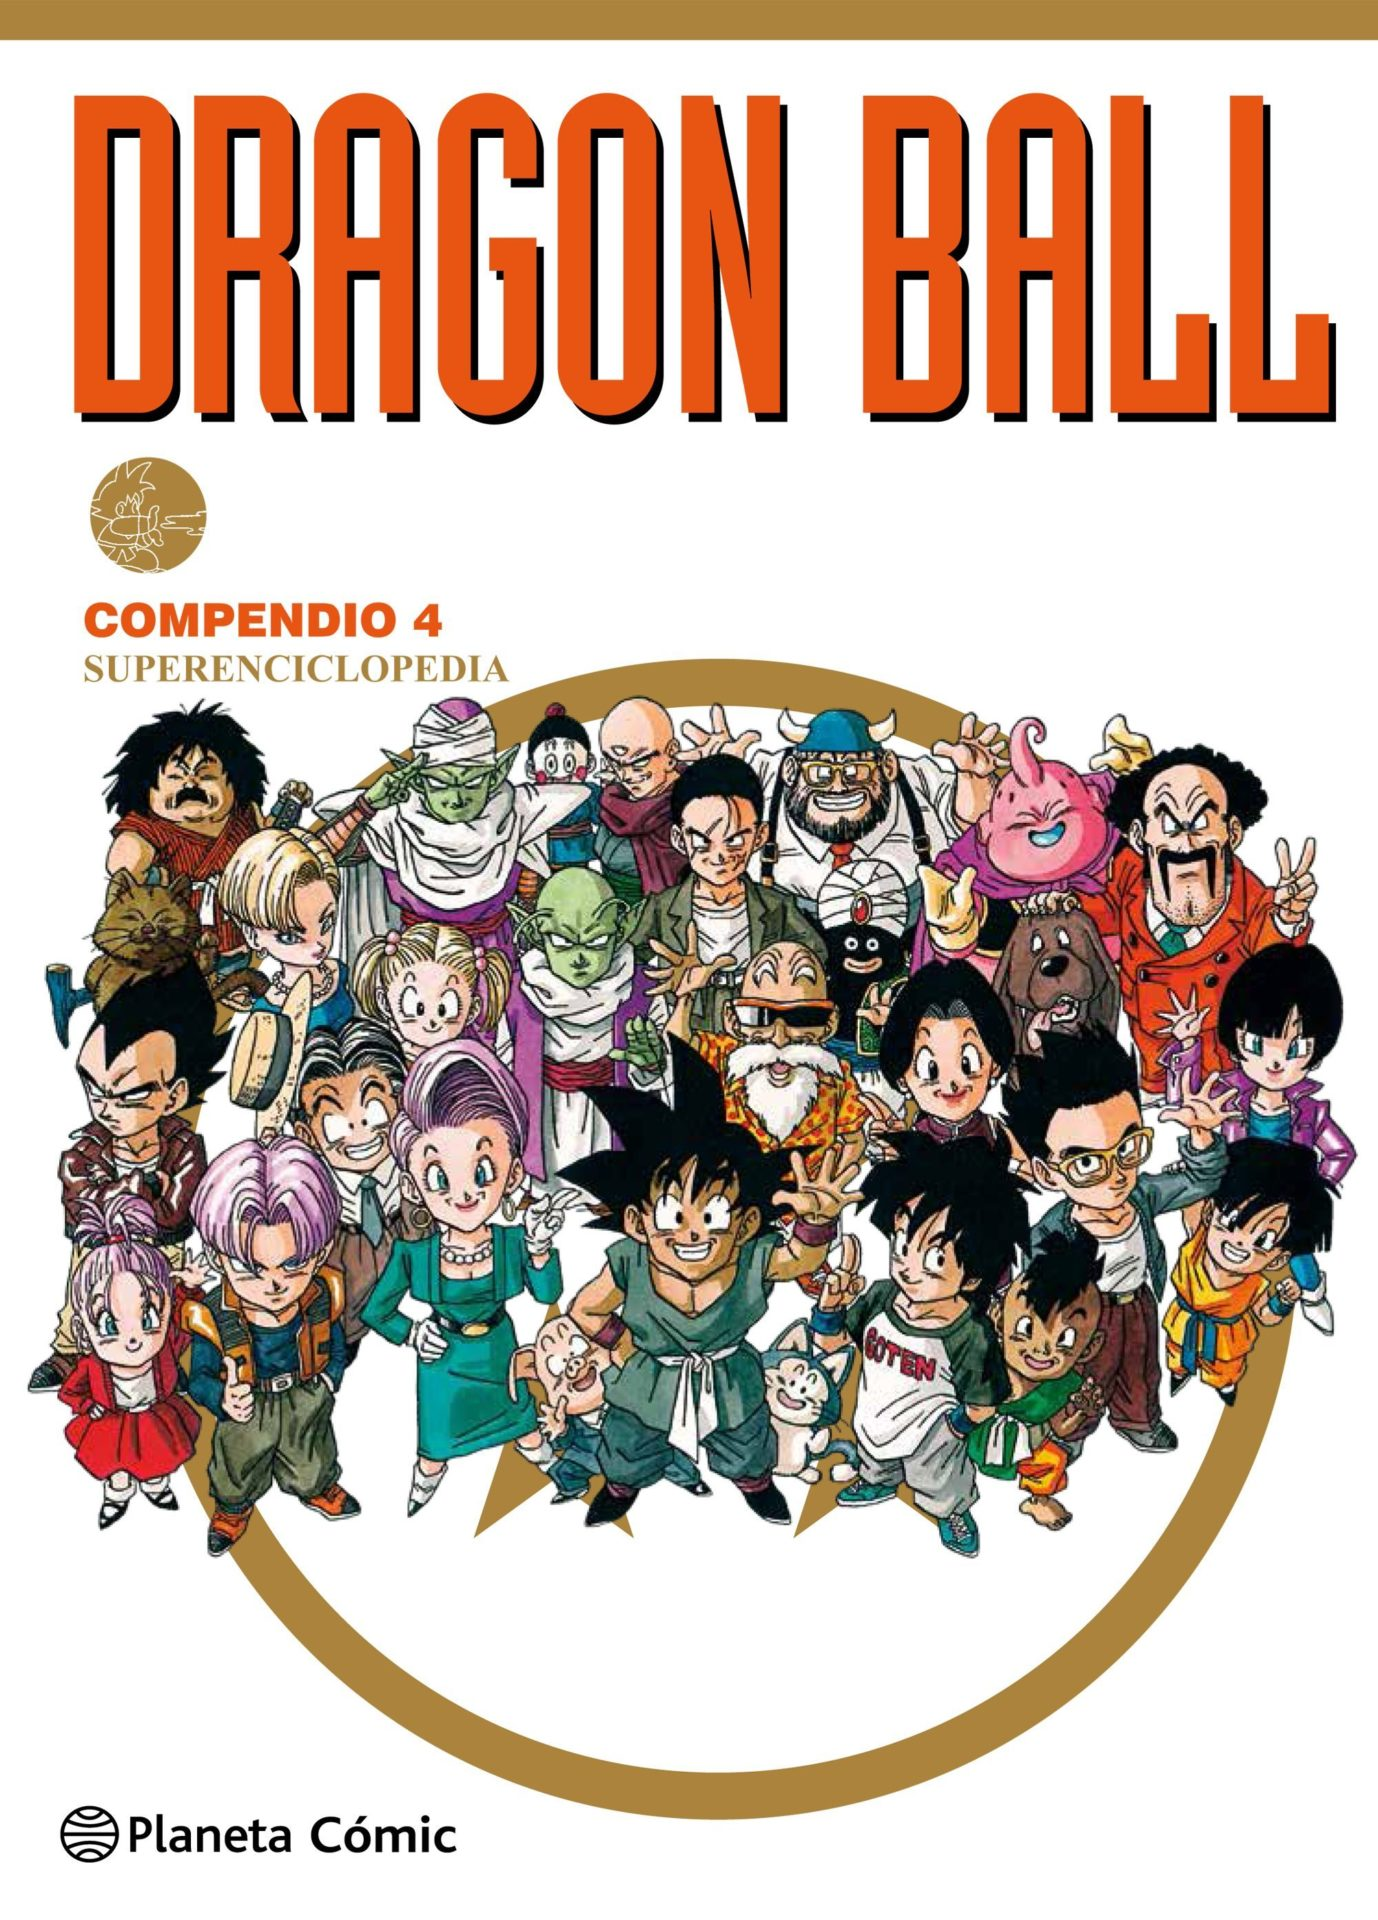 dragon ball compendio 4 superenciclopedia